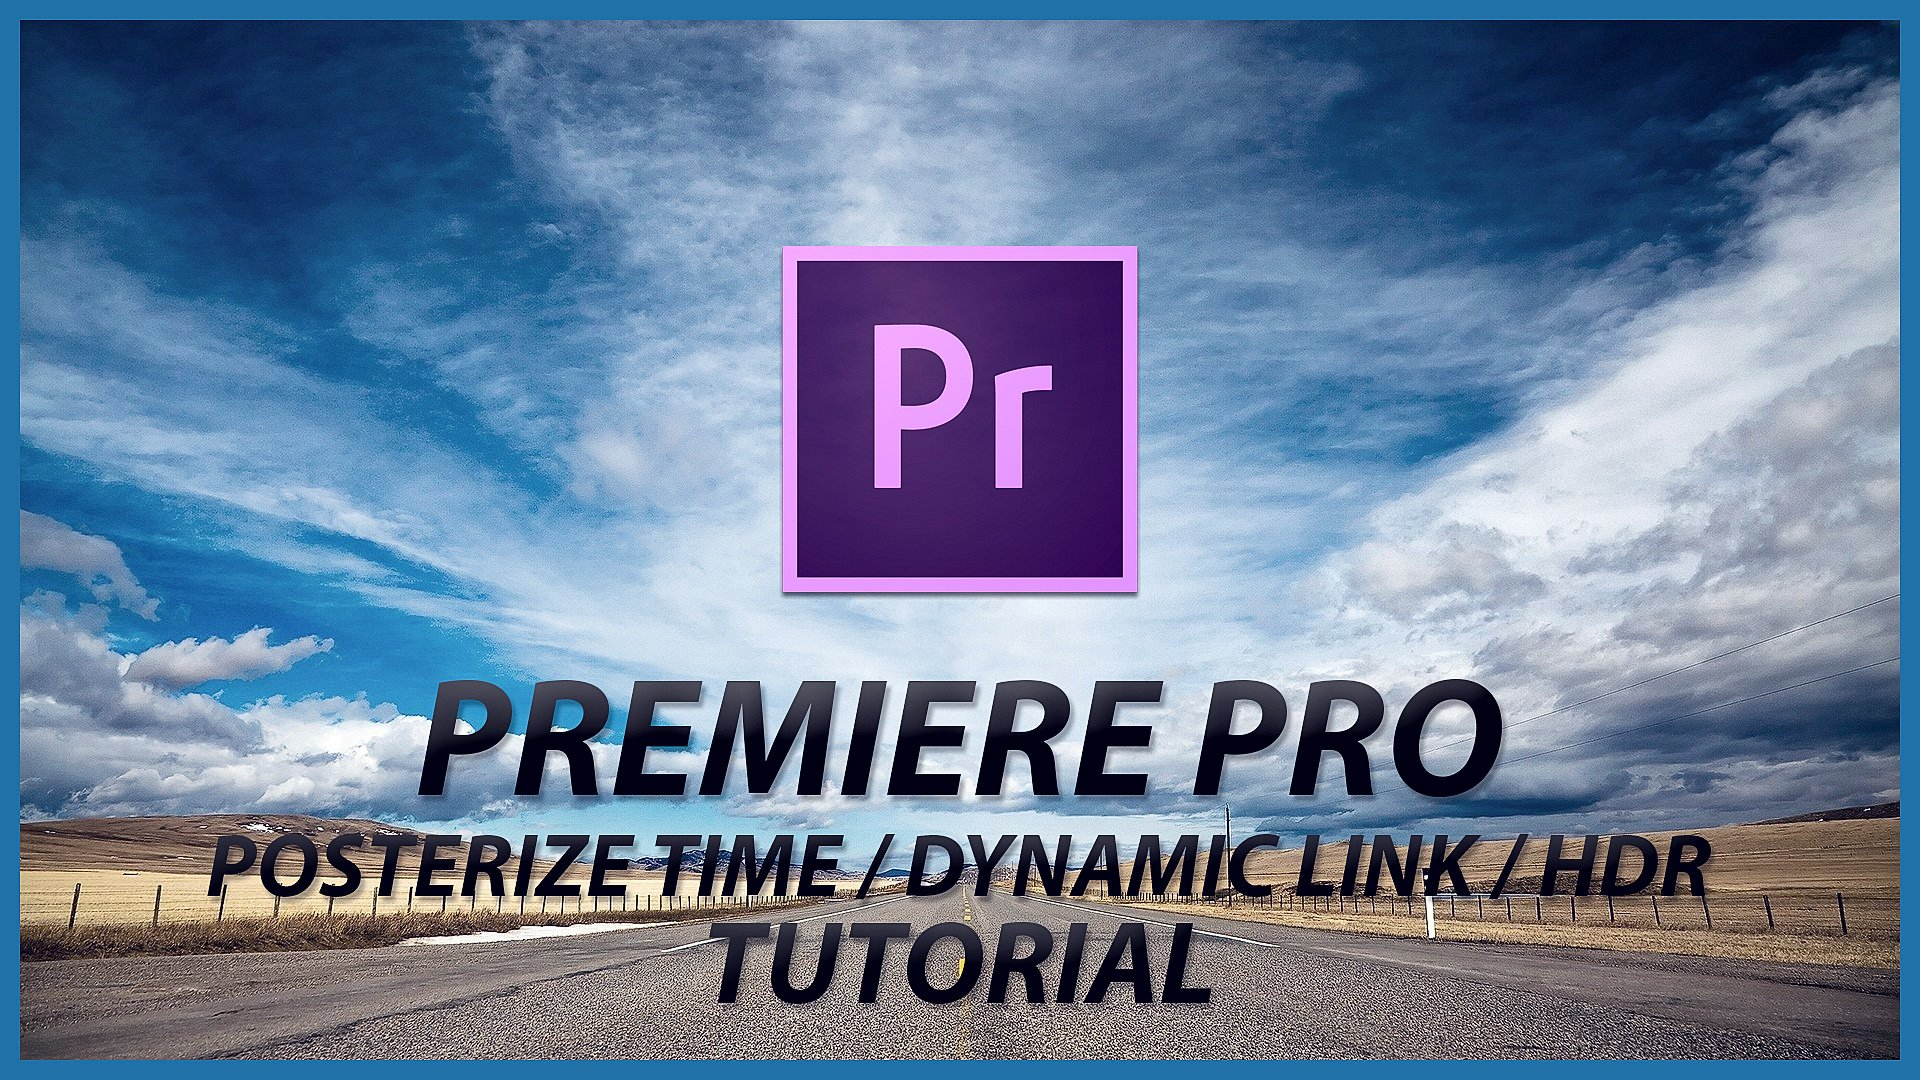 #13 PREMIERE PRO, AFTER EFFECTS - POSTERIZE TIME / DYNAMIC LINK / HDR VIDEO (SEREBRYΛKOV)